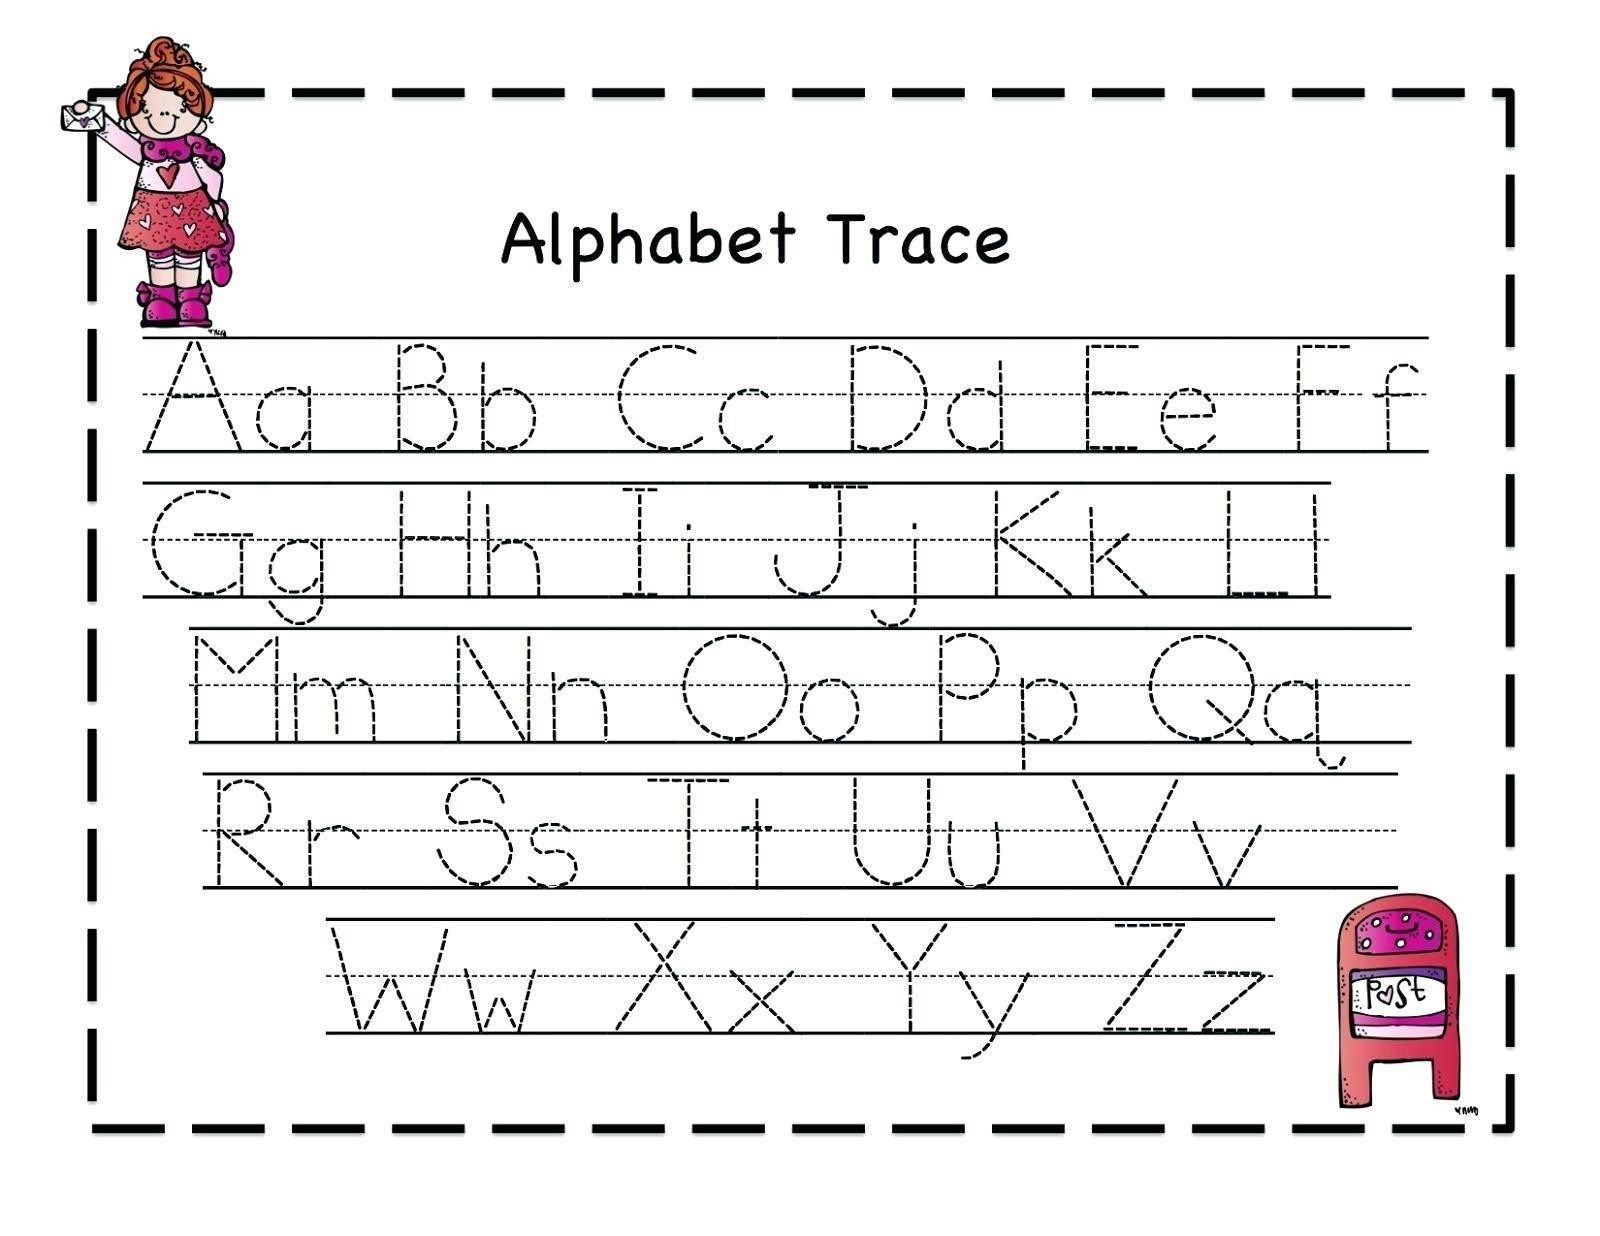 Free Printable Alphabet Letters Upper And Lowercase 1 Alphabet Tracing Alphabet Worksheets Free Printable Alphabet Letters [ 1236 x 1600 Pixel ]